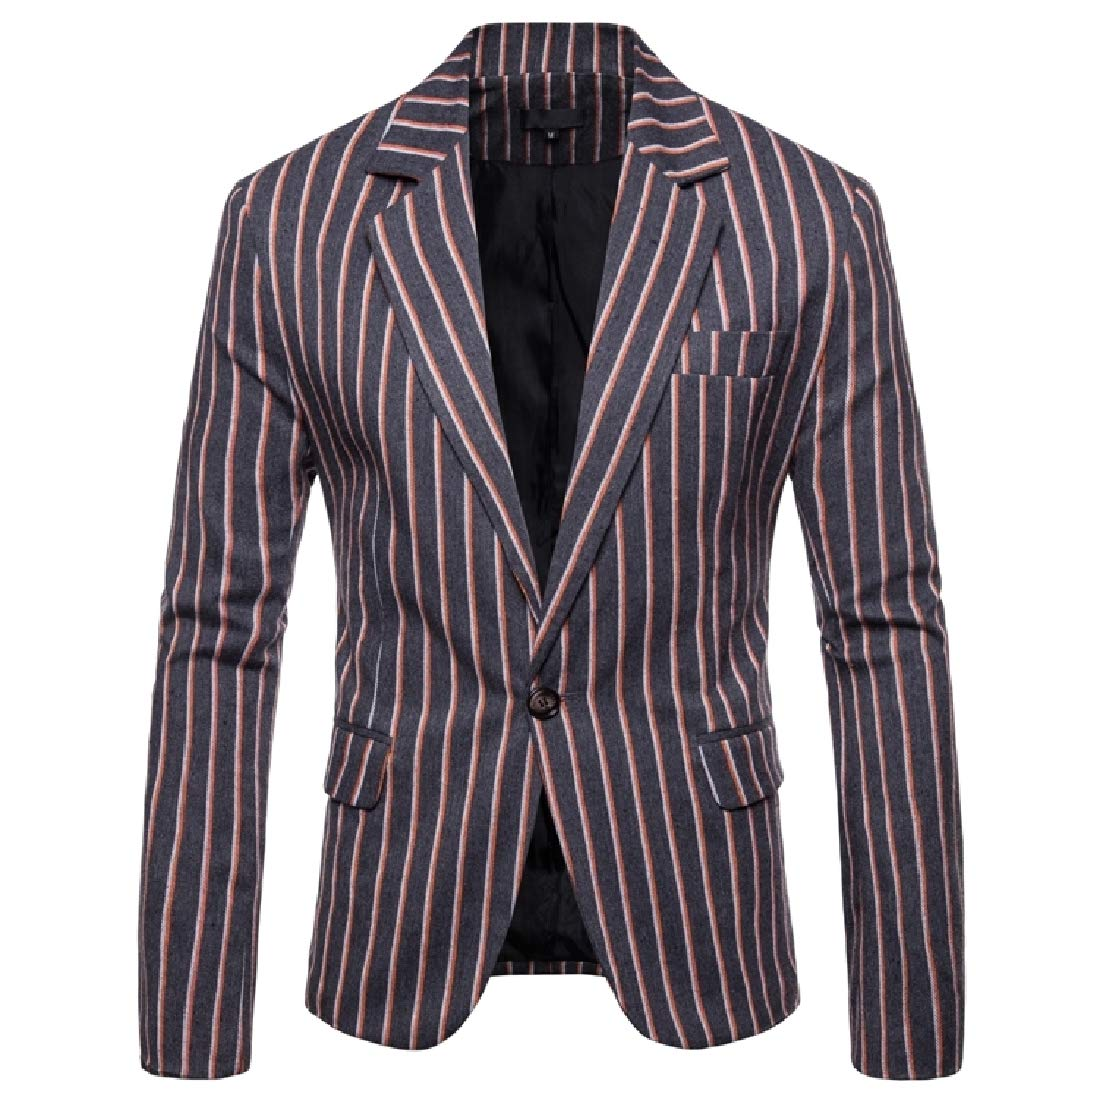 AngelSpace Mens Formal Striped Plus Size Skinny Blazer Jacket Suits